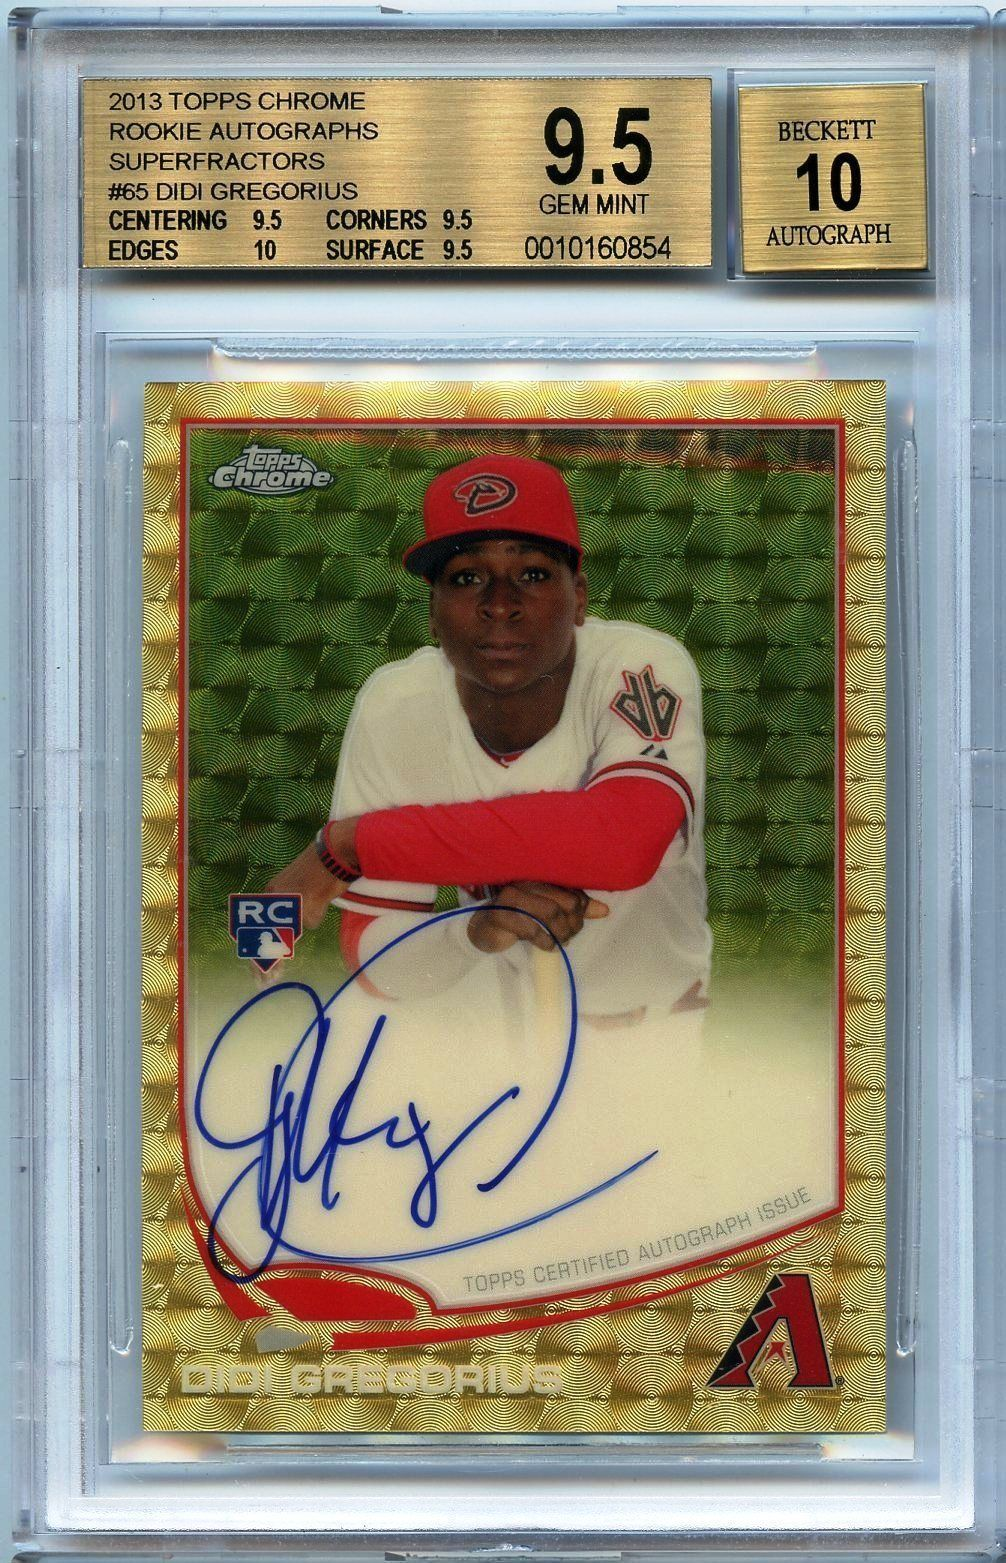 2013 Topps Chrome 11 Superfractor Auto Didi Gregorius Rc